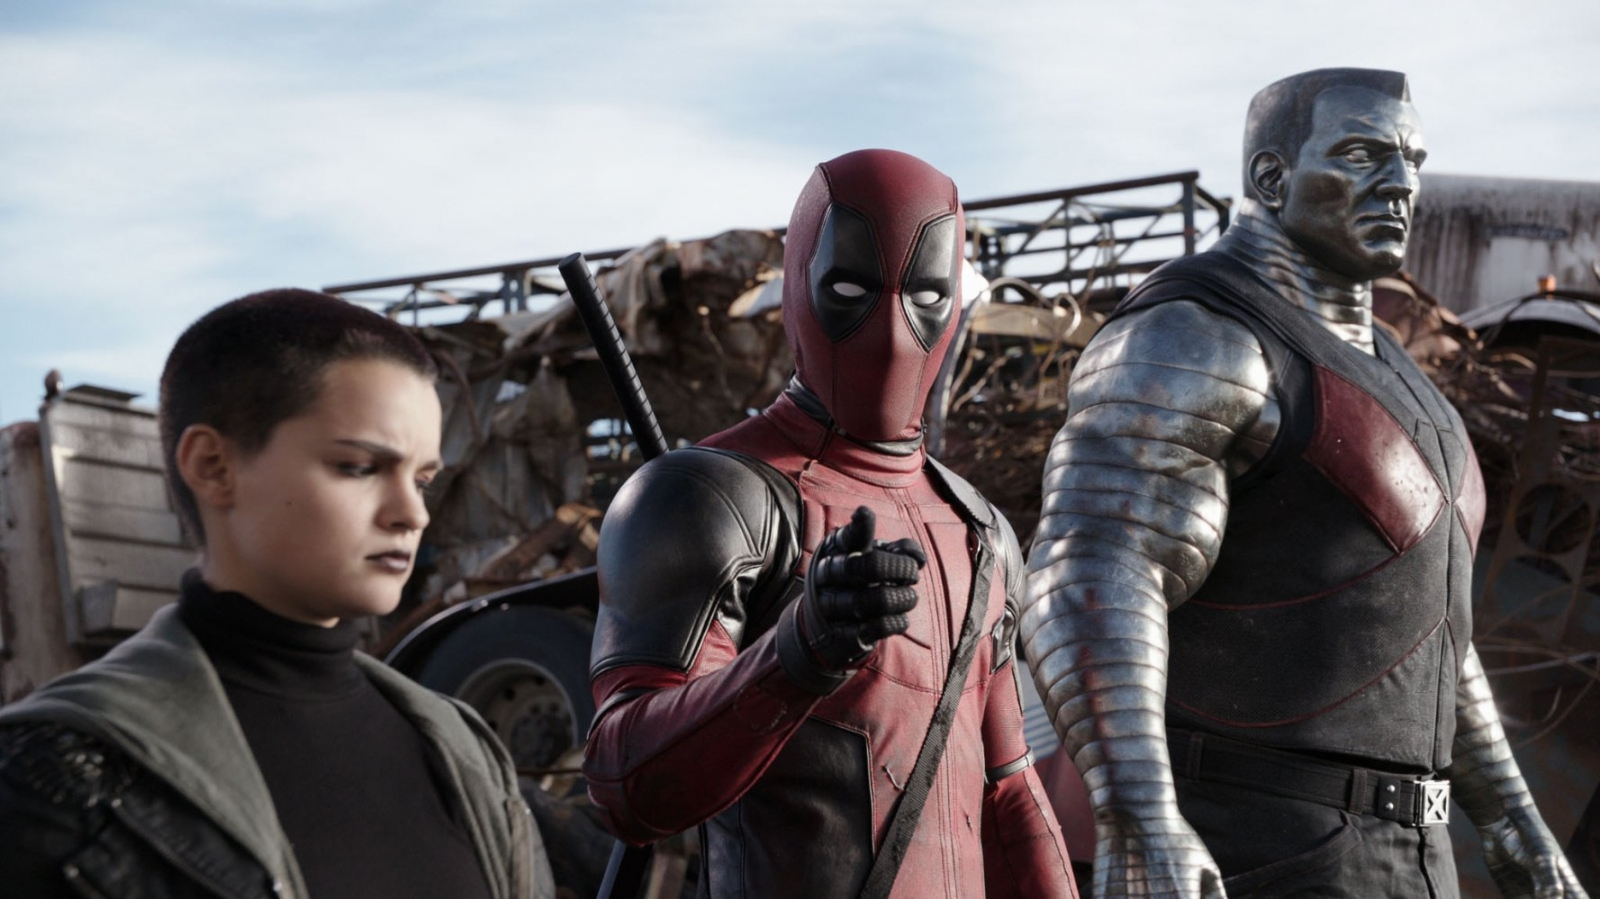 Deadpool 2: Cable, Colossus, and Negasonic Teenage Warhead Confirmed